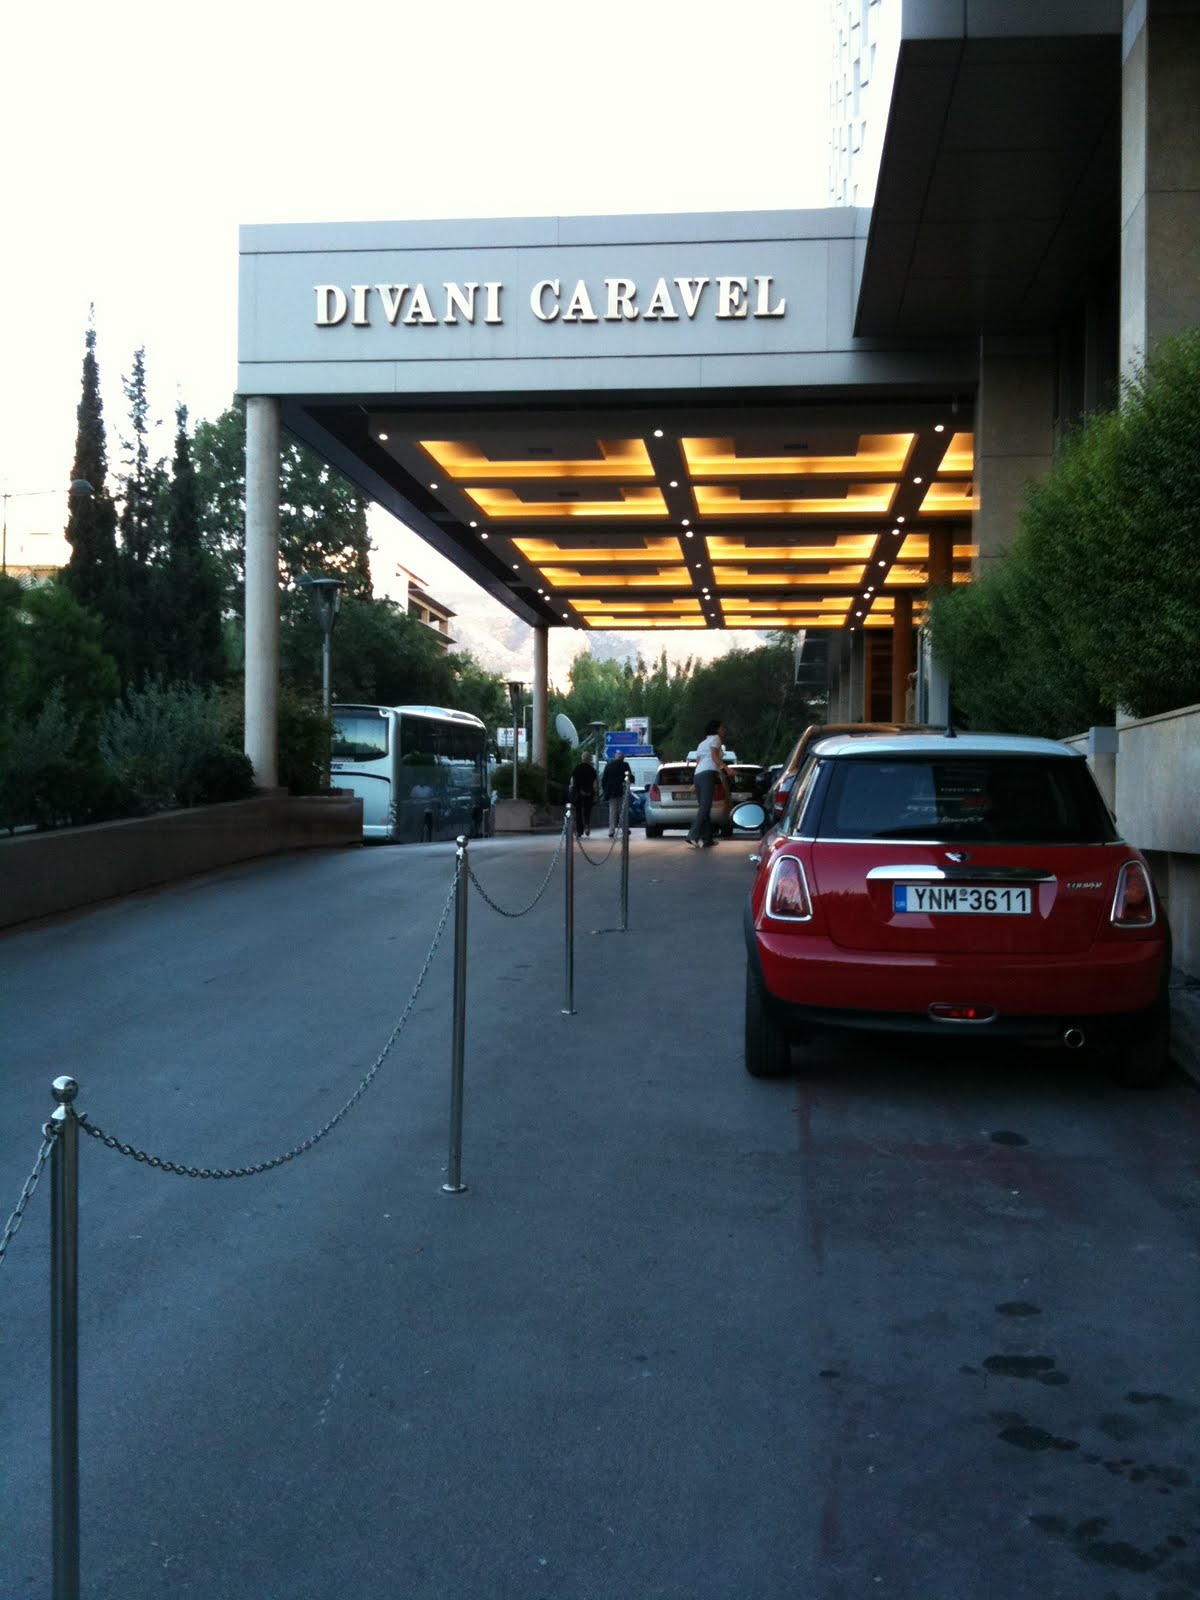 Divani Caravel Hotel Airport Shuttle I Love To Tell The Story October 2010